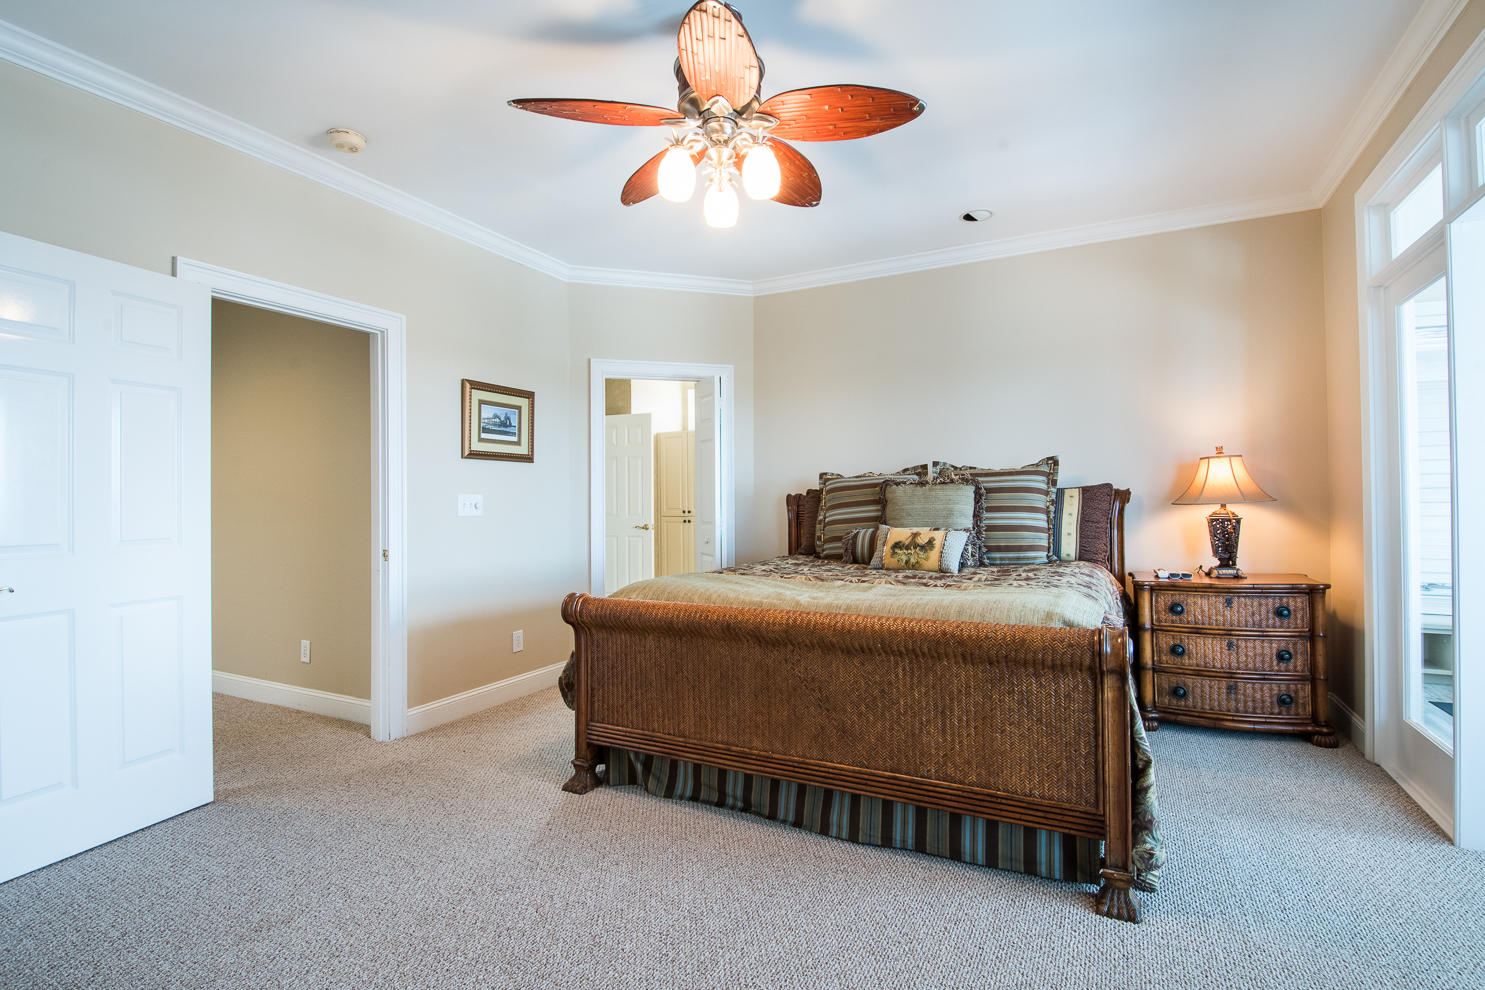 Tolers Cove Homes For Sale - B-4 & B-5 Tolers Cove Marina 70ft + Home, Mount Pleasant, SC - 16